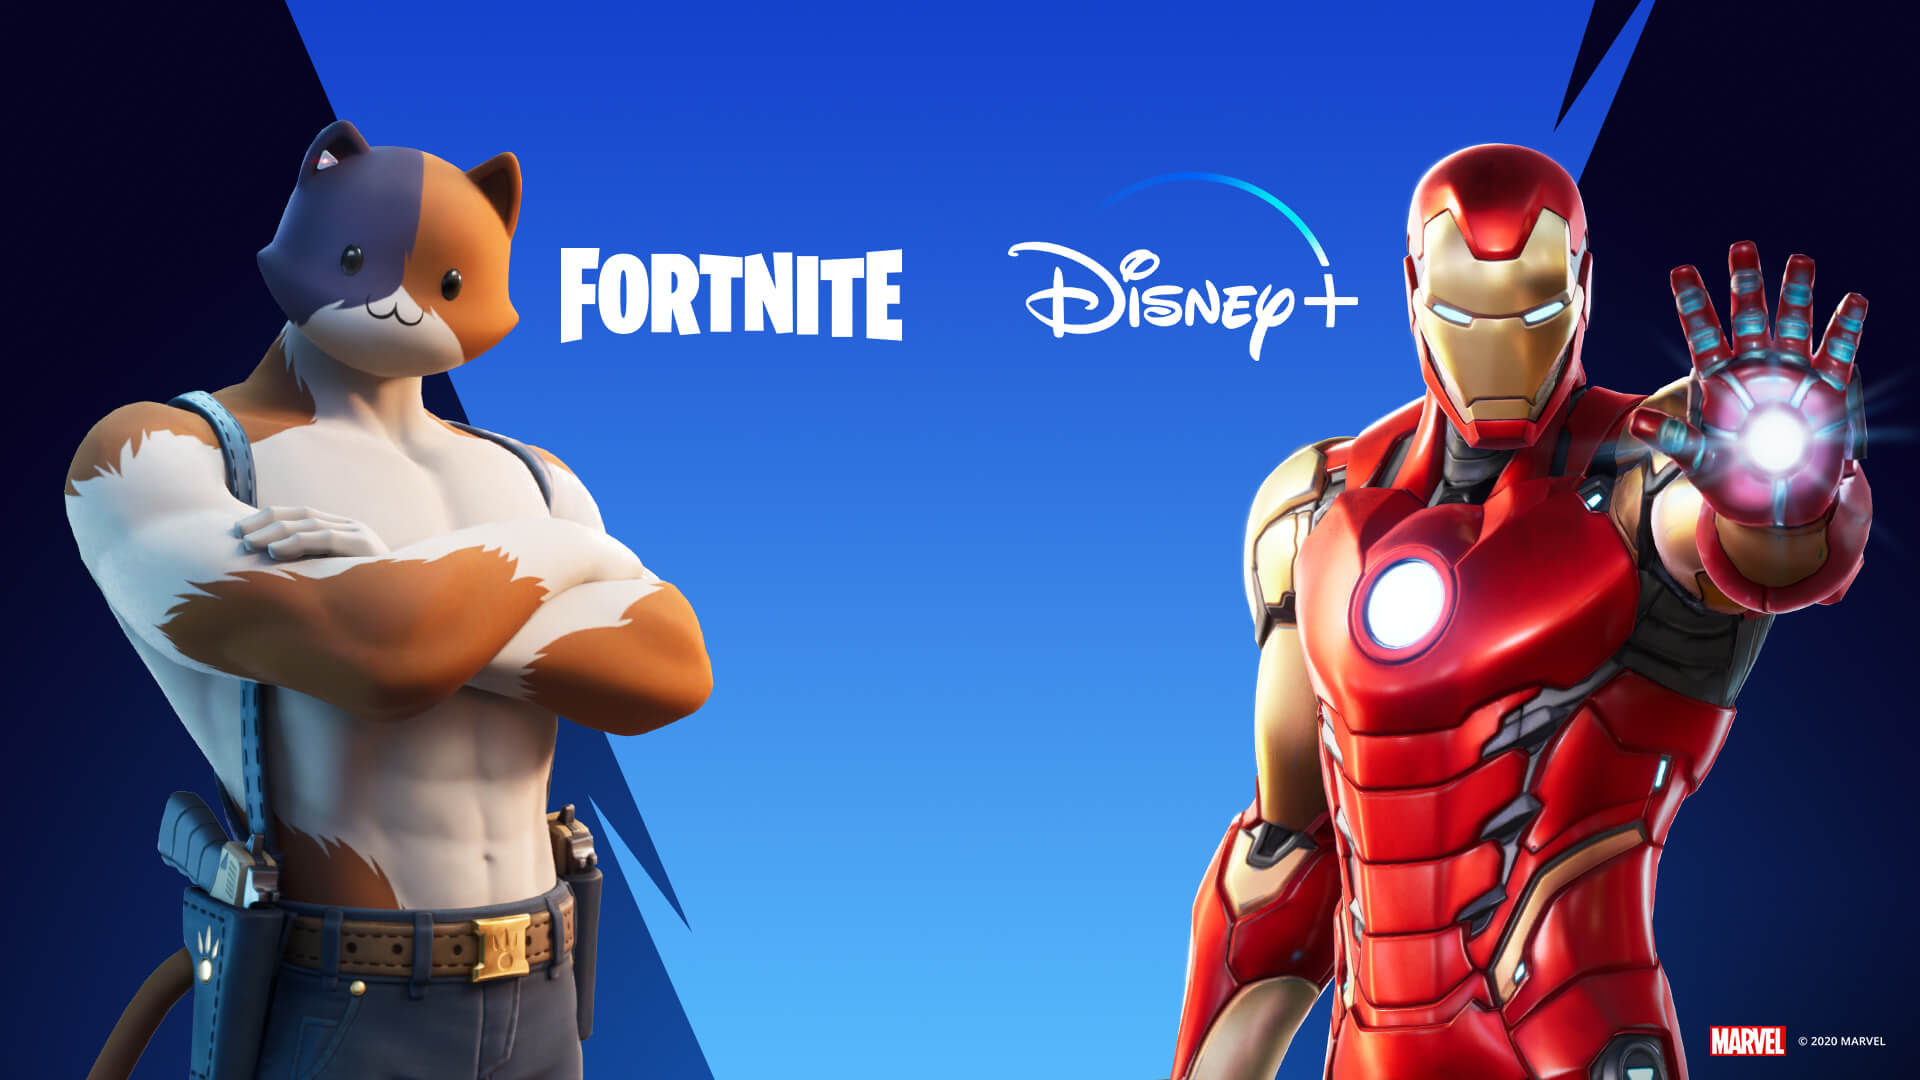 Fortnite Disney Plus Promotion